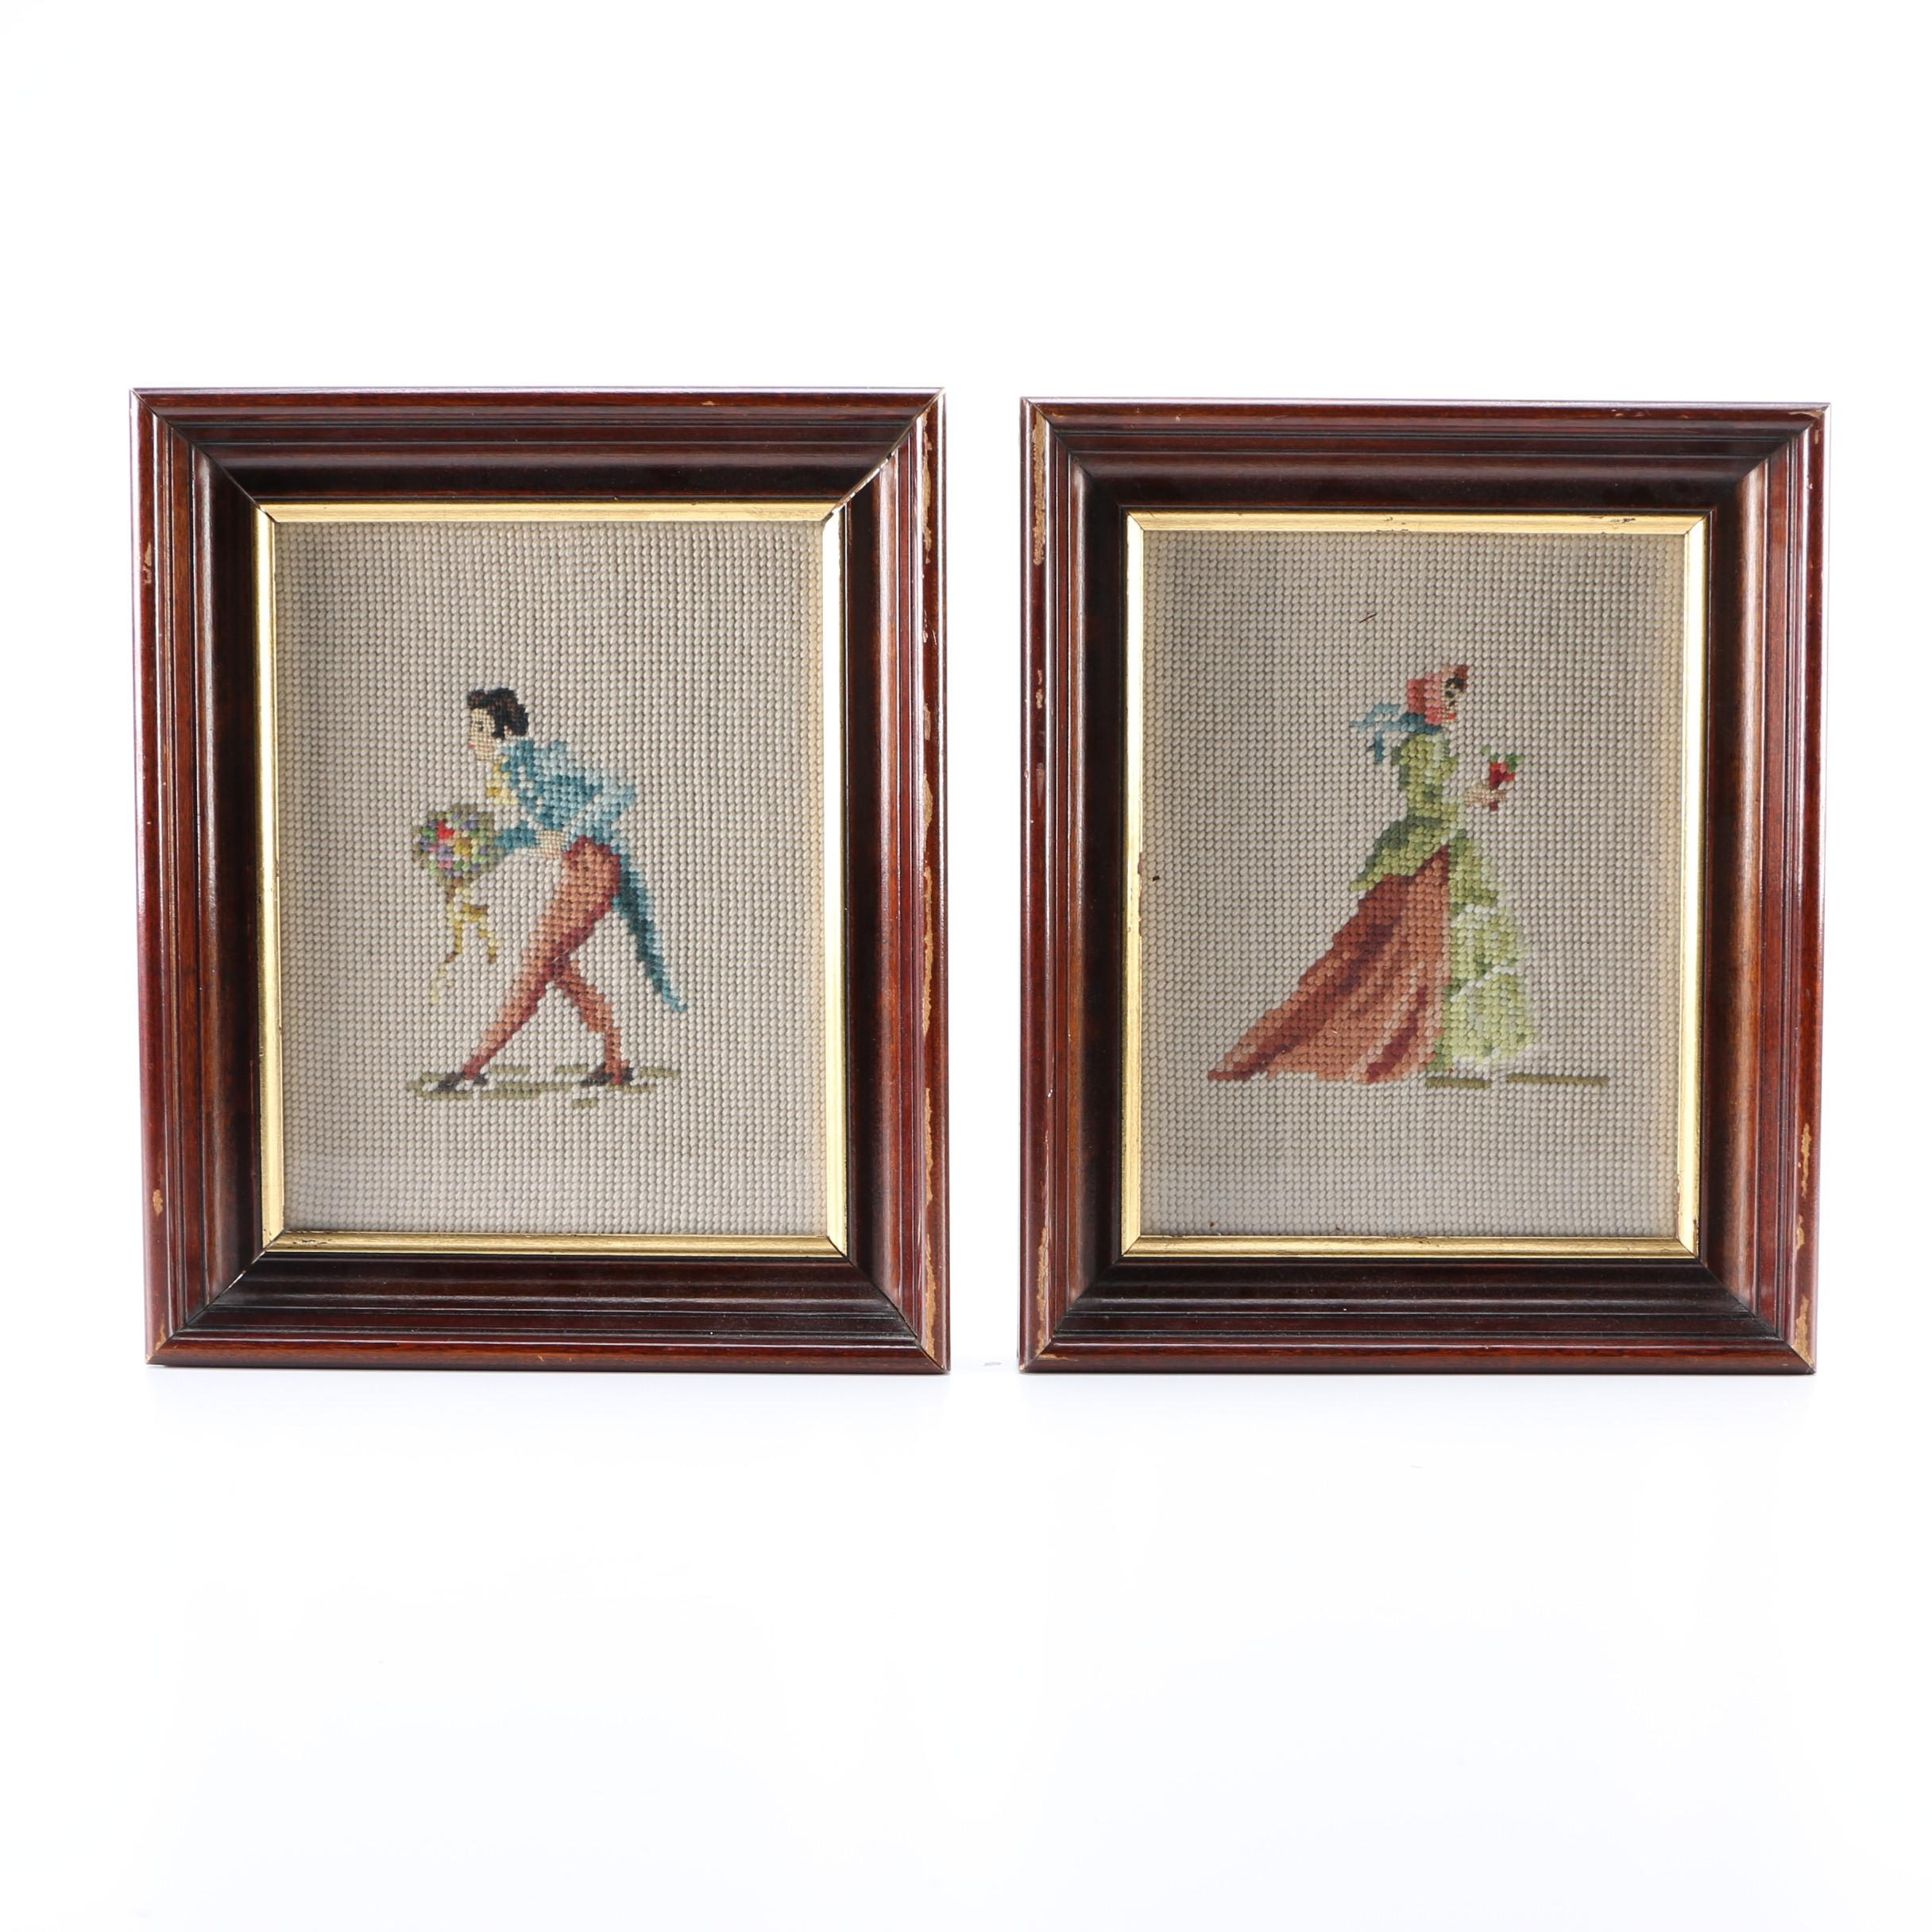 Pair of Hand-Sewn Framed Needlepoints